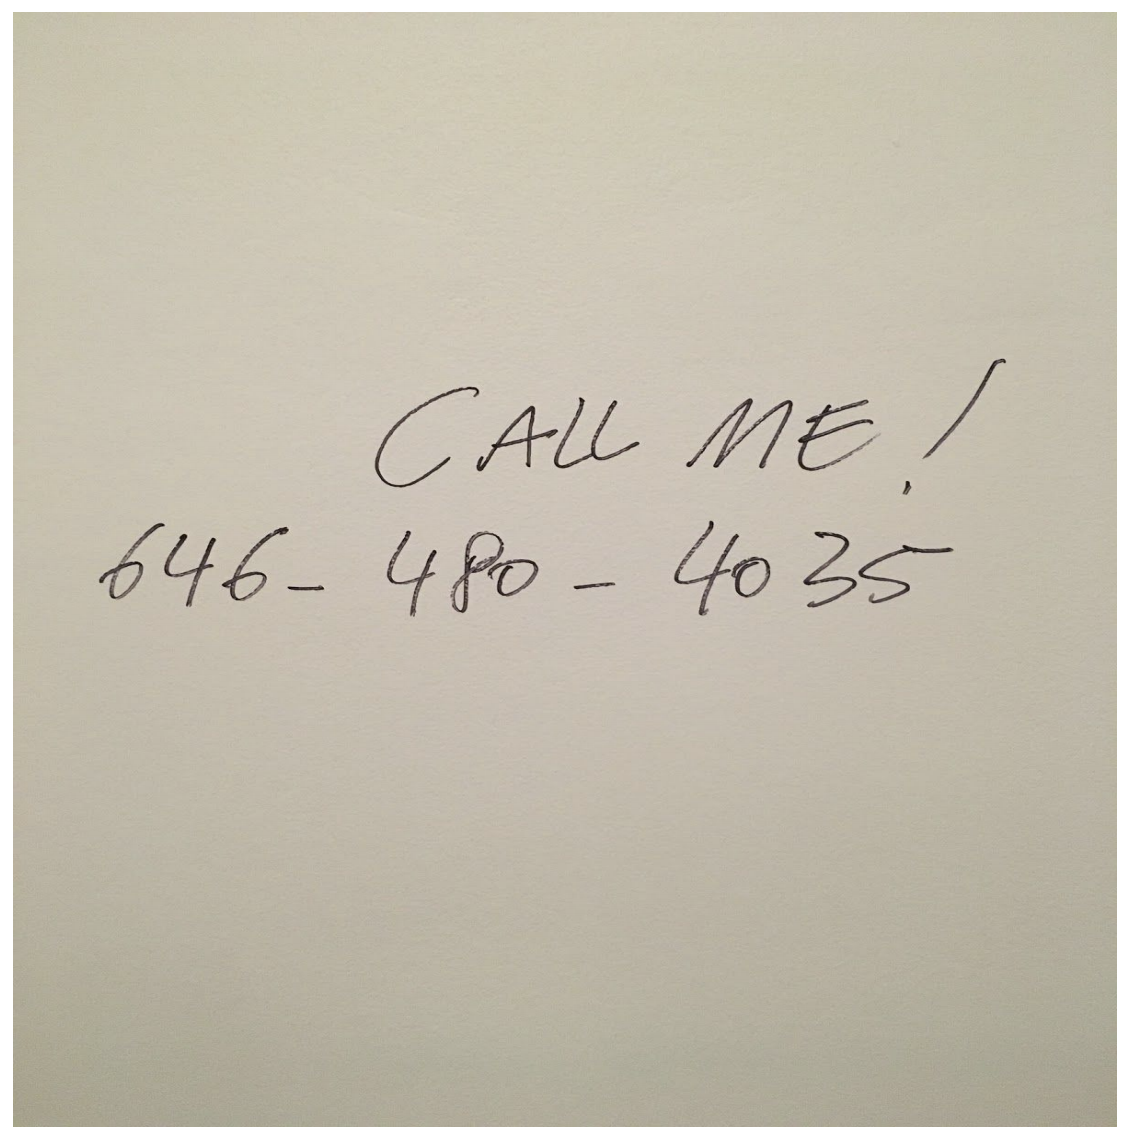 Fig.2. Philippe Parreno,  Call me , 2018. Audio. Photo by: Cj Stephens.